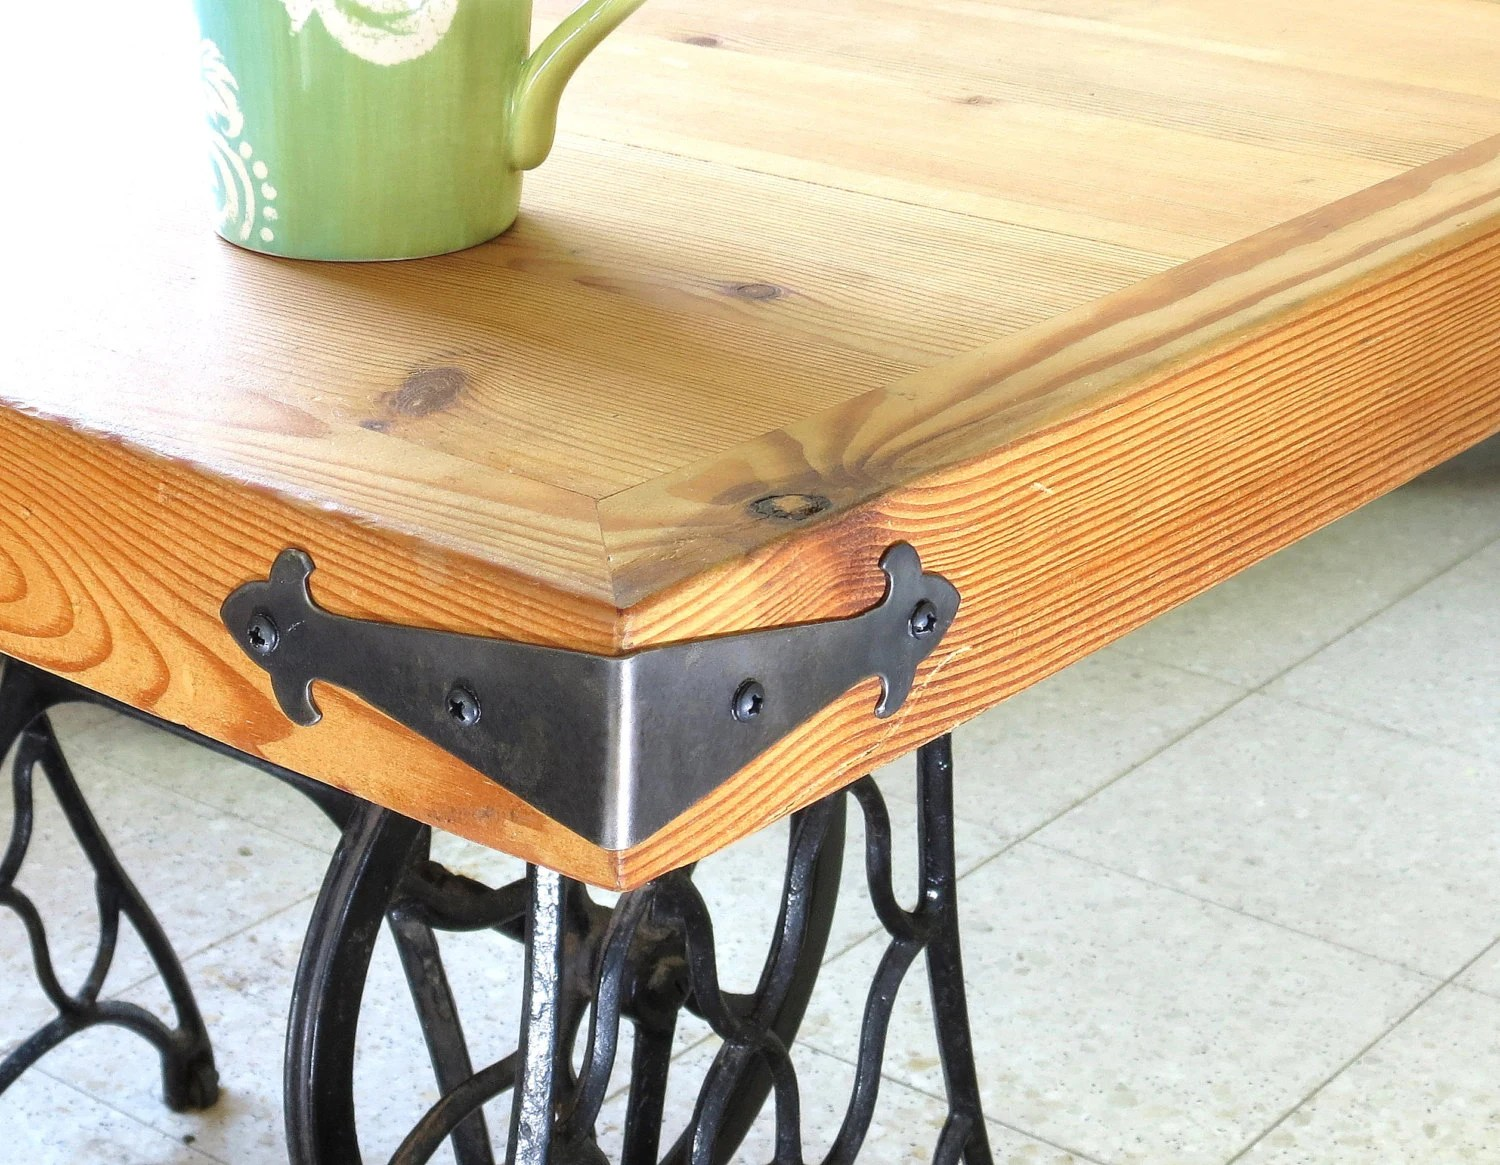 chair steel bracket wrought iron cushions outdoor 2 decor corner braces small angle plates